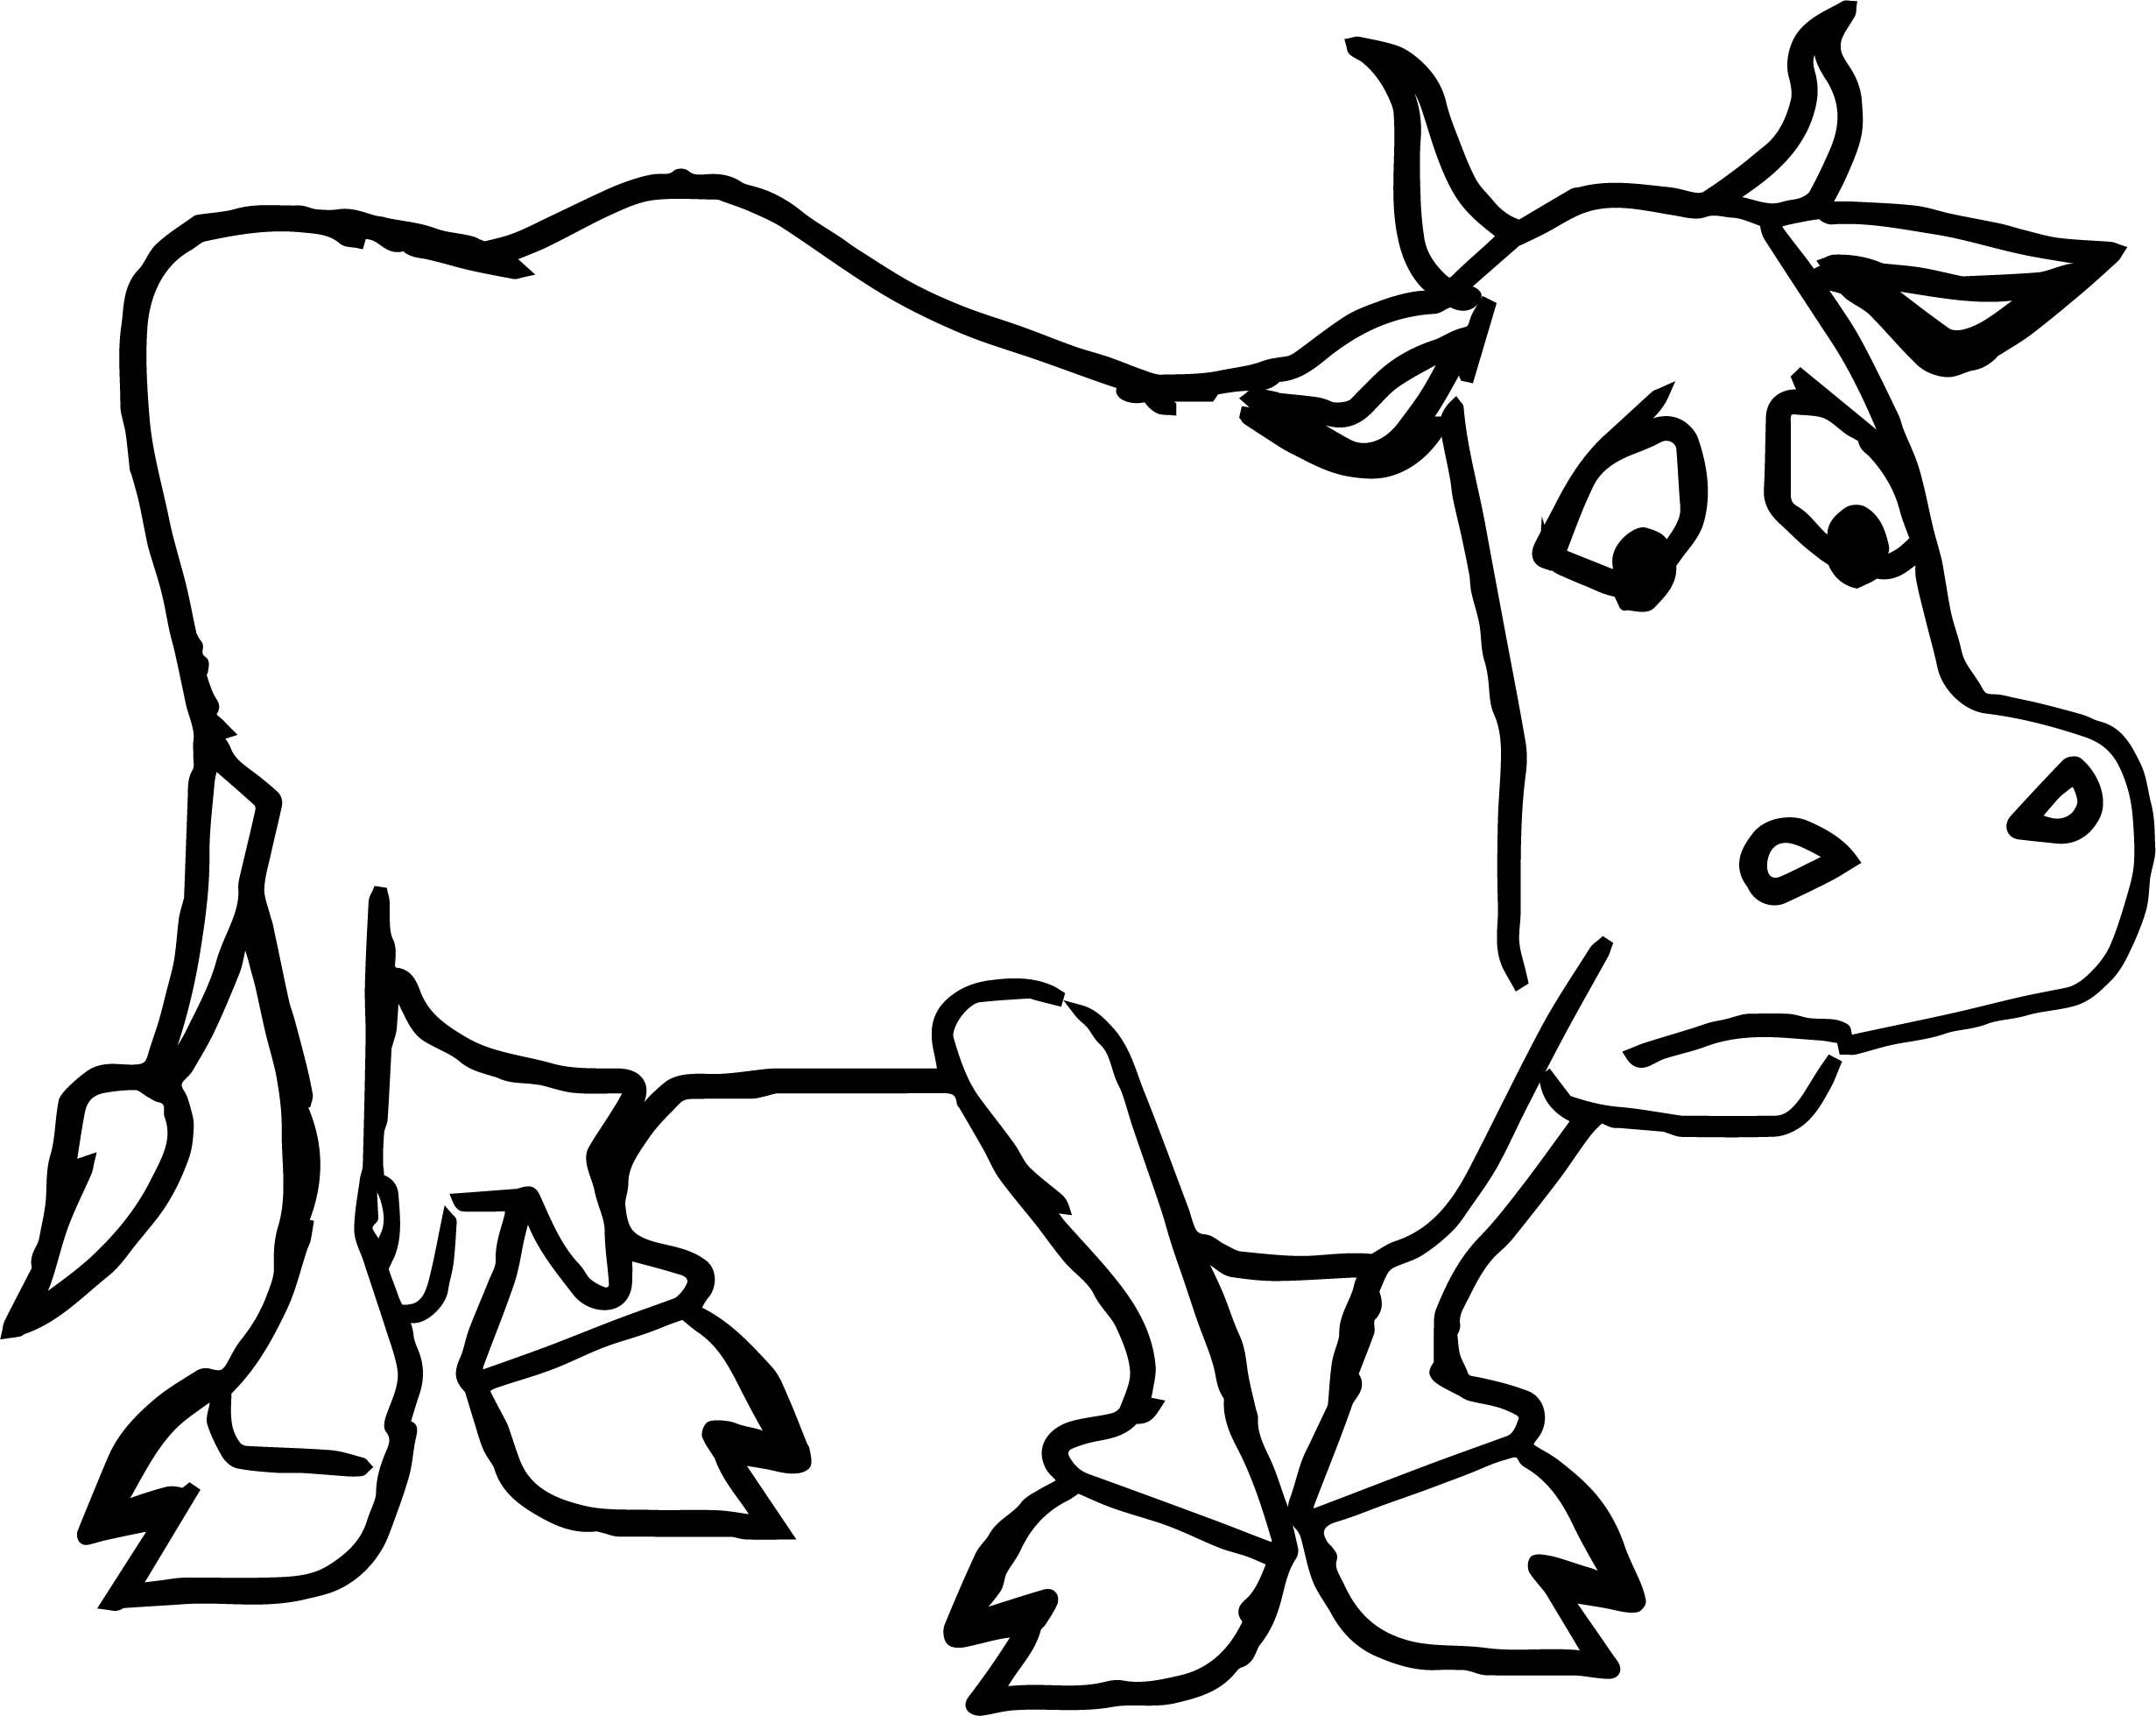 dairy cow coloring pages wholesome dairy cow on the farm animal coloring web page coloring pages dairy cow